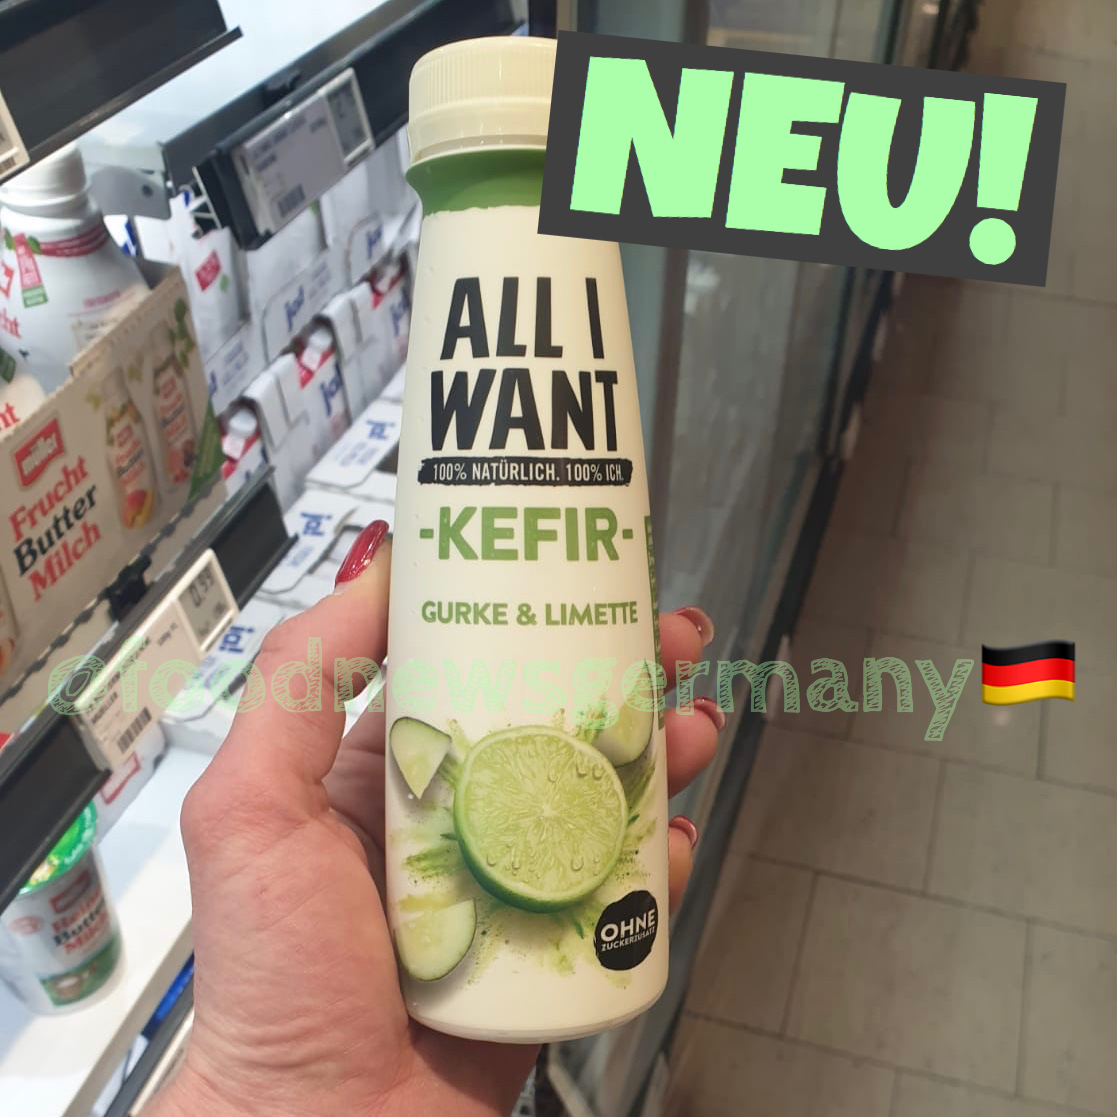 Danone All I want Kefir